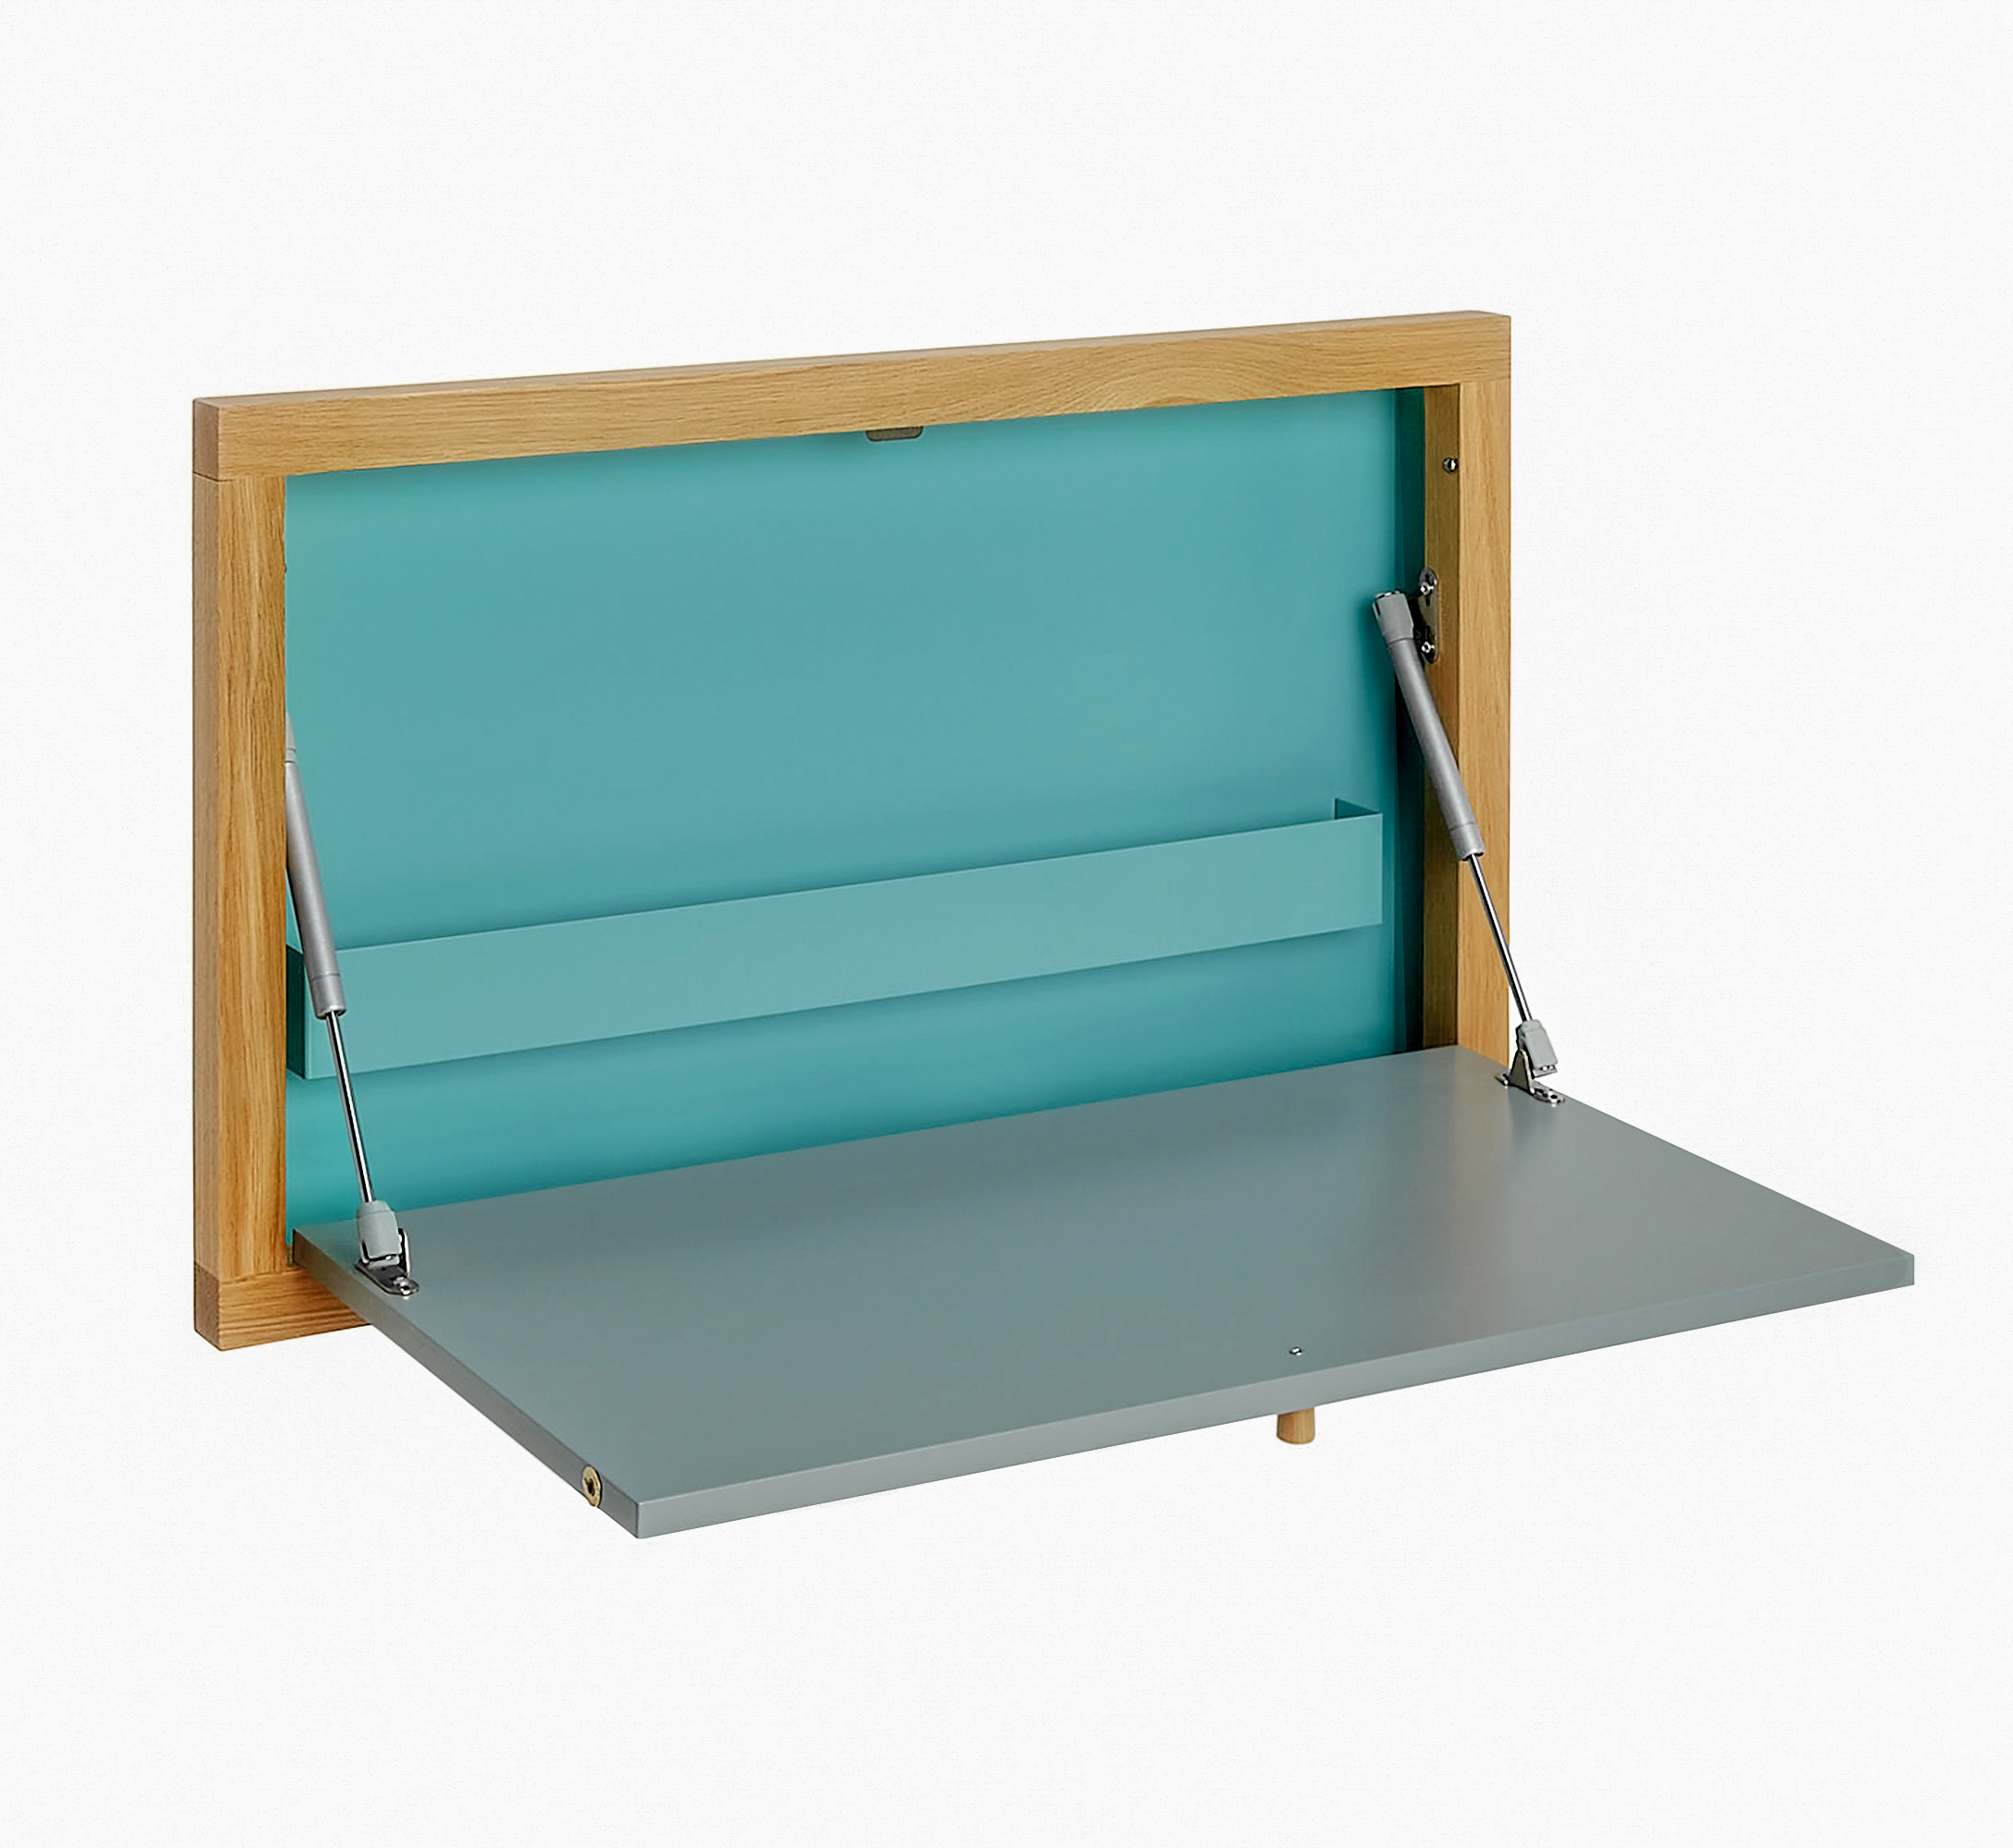 173004001093 Brenta Wall Desk Blue 01